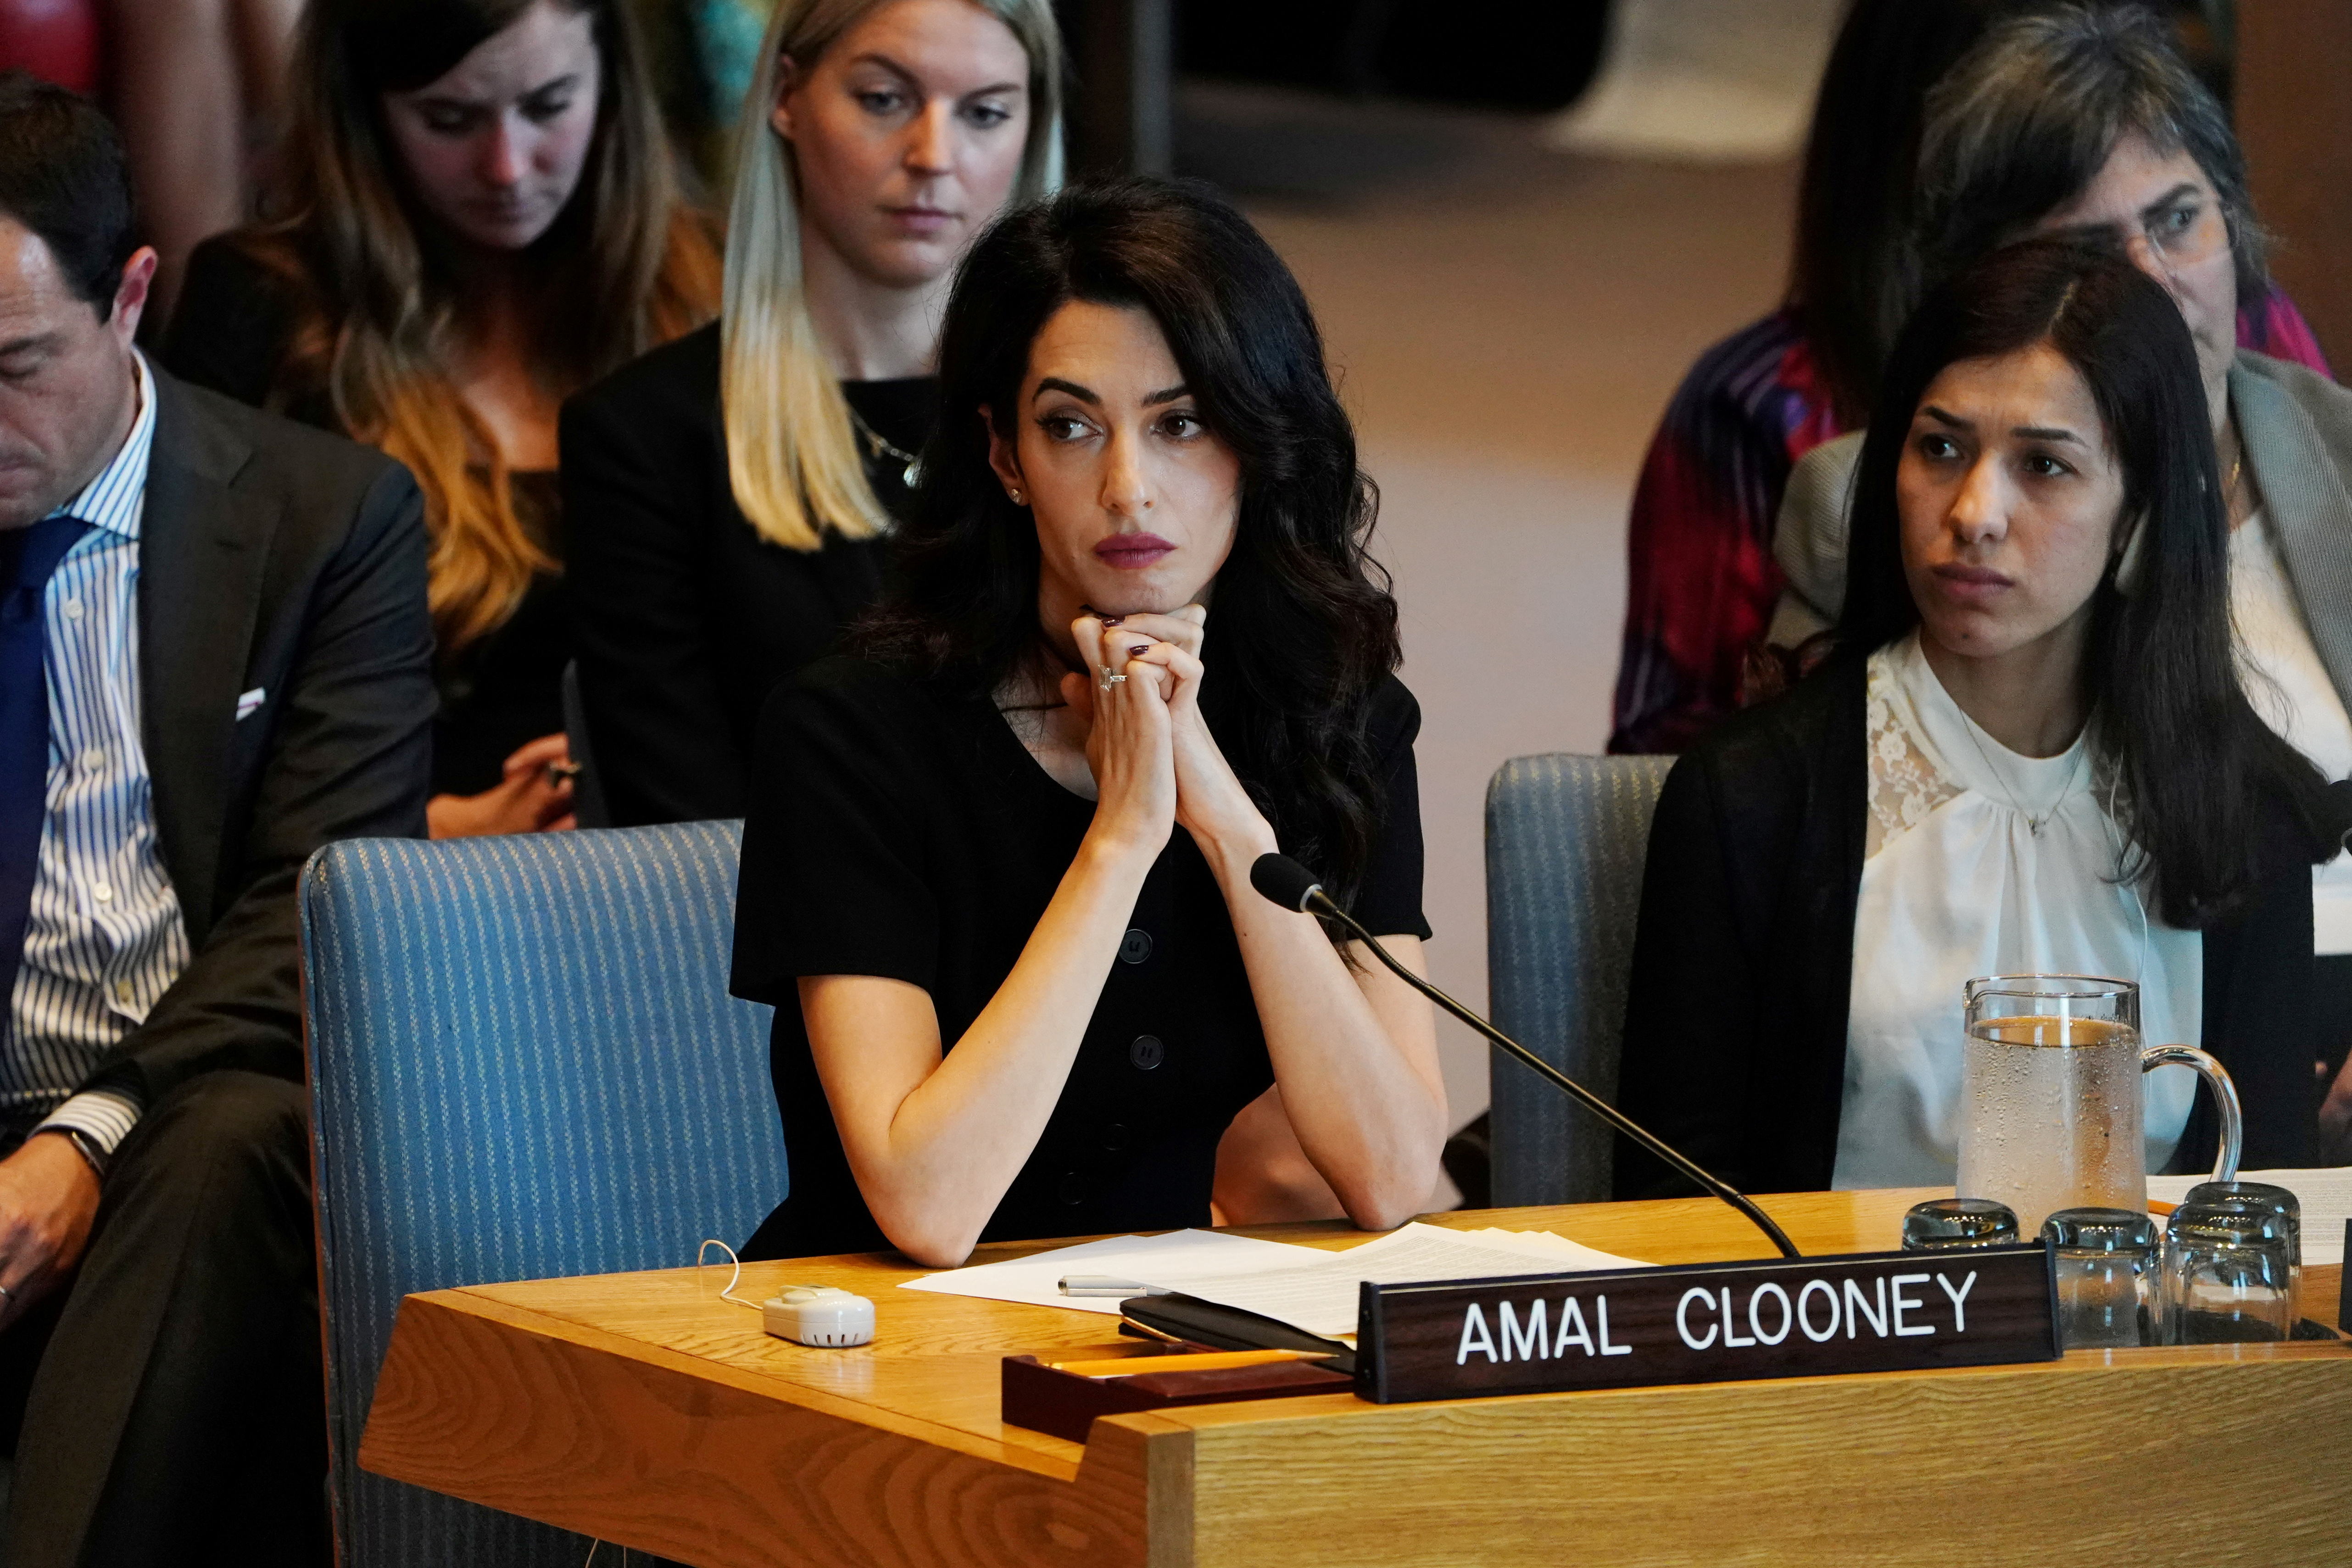 Amal Clooney is pictured at the United Nations Security Council during a meeting about sexual violence in conflict in New York, New York, U.S., April 23, 2019.   REUTERS/Carlo Allegri/File Photo